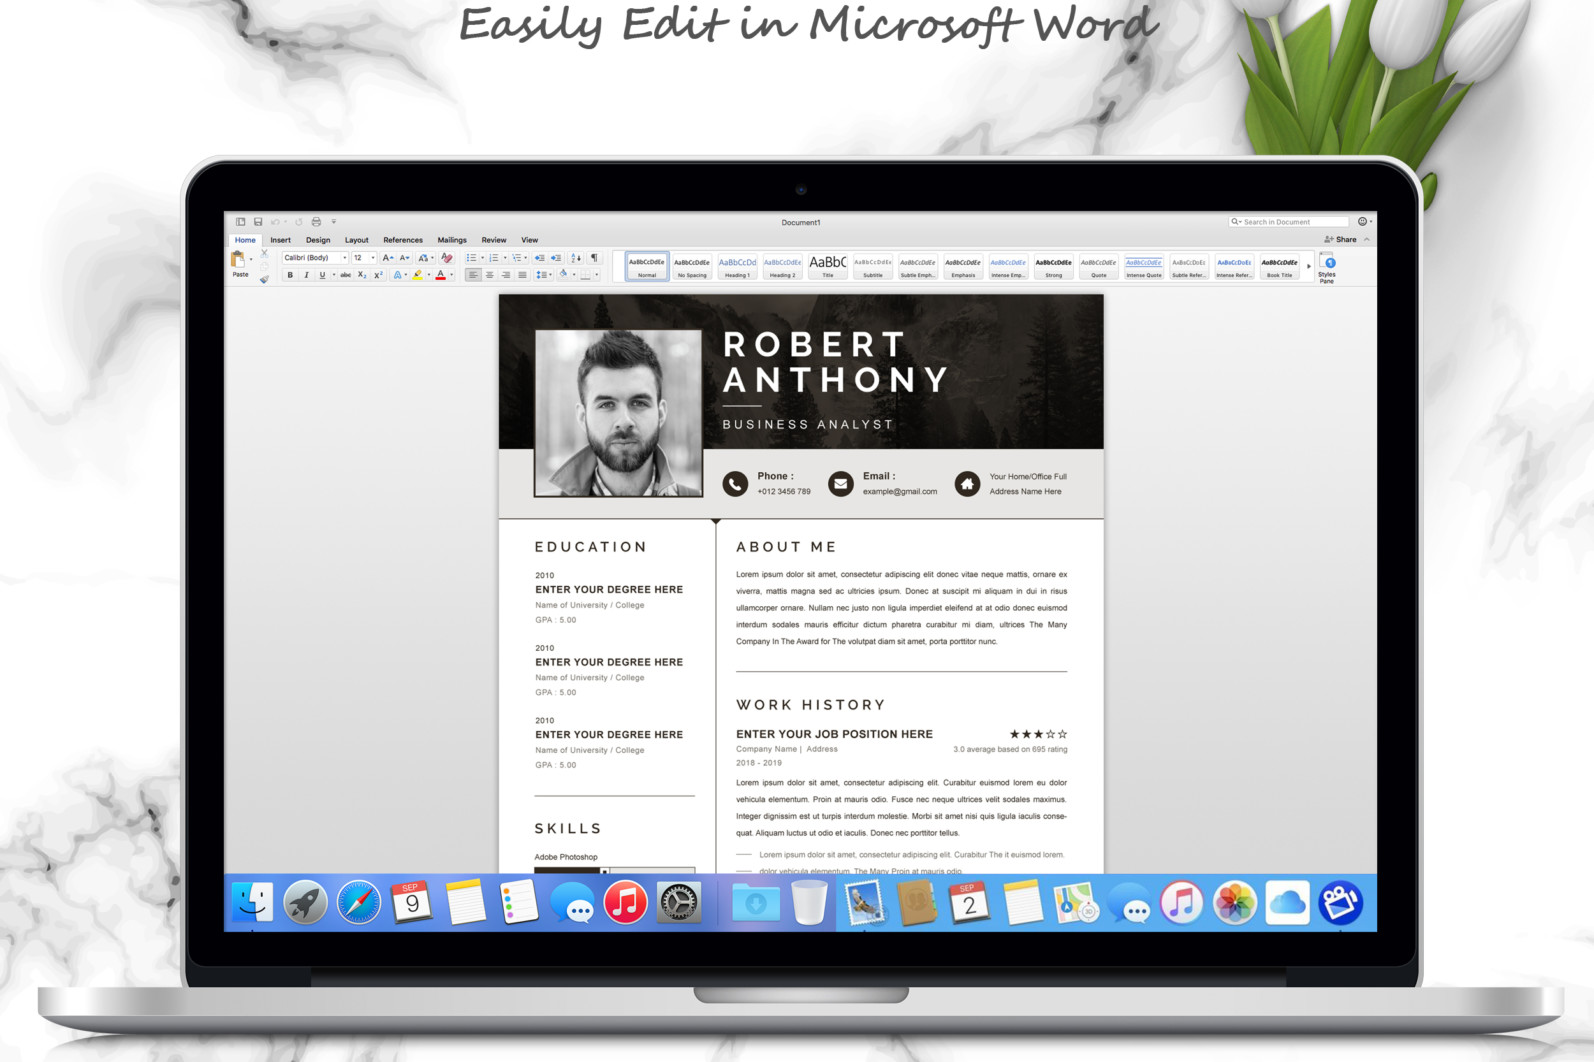 Professional Resume, Instant Download - 05 3 Pages Free Resume MS Word File Format Design Template 7 -